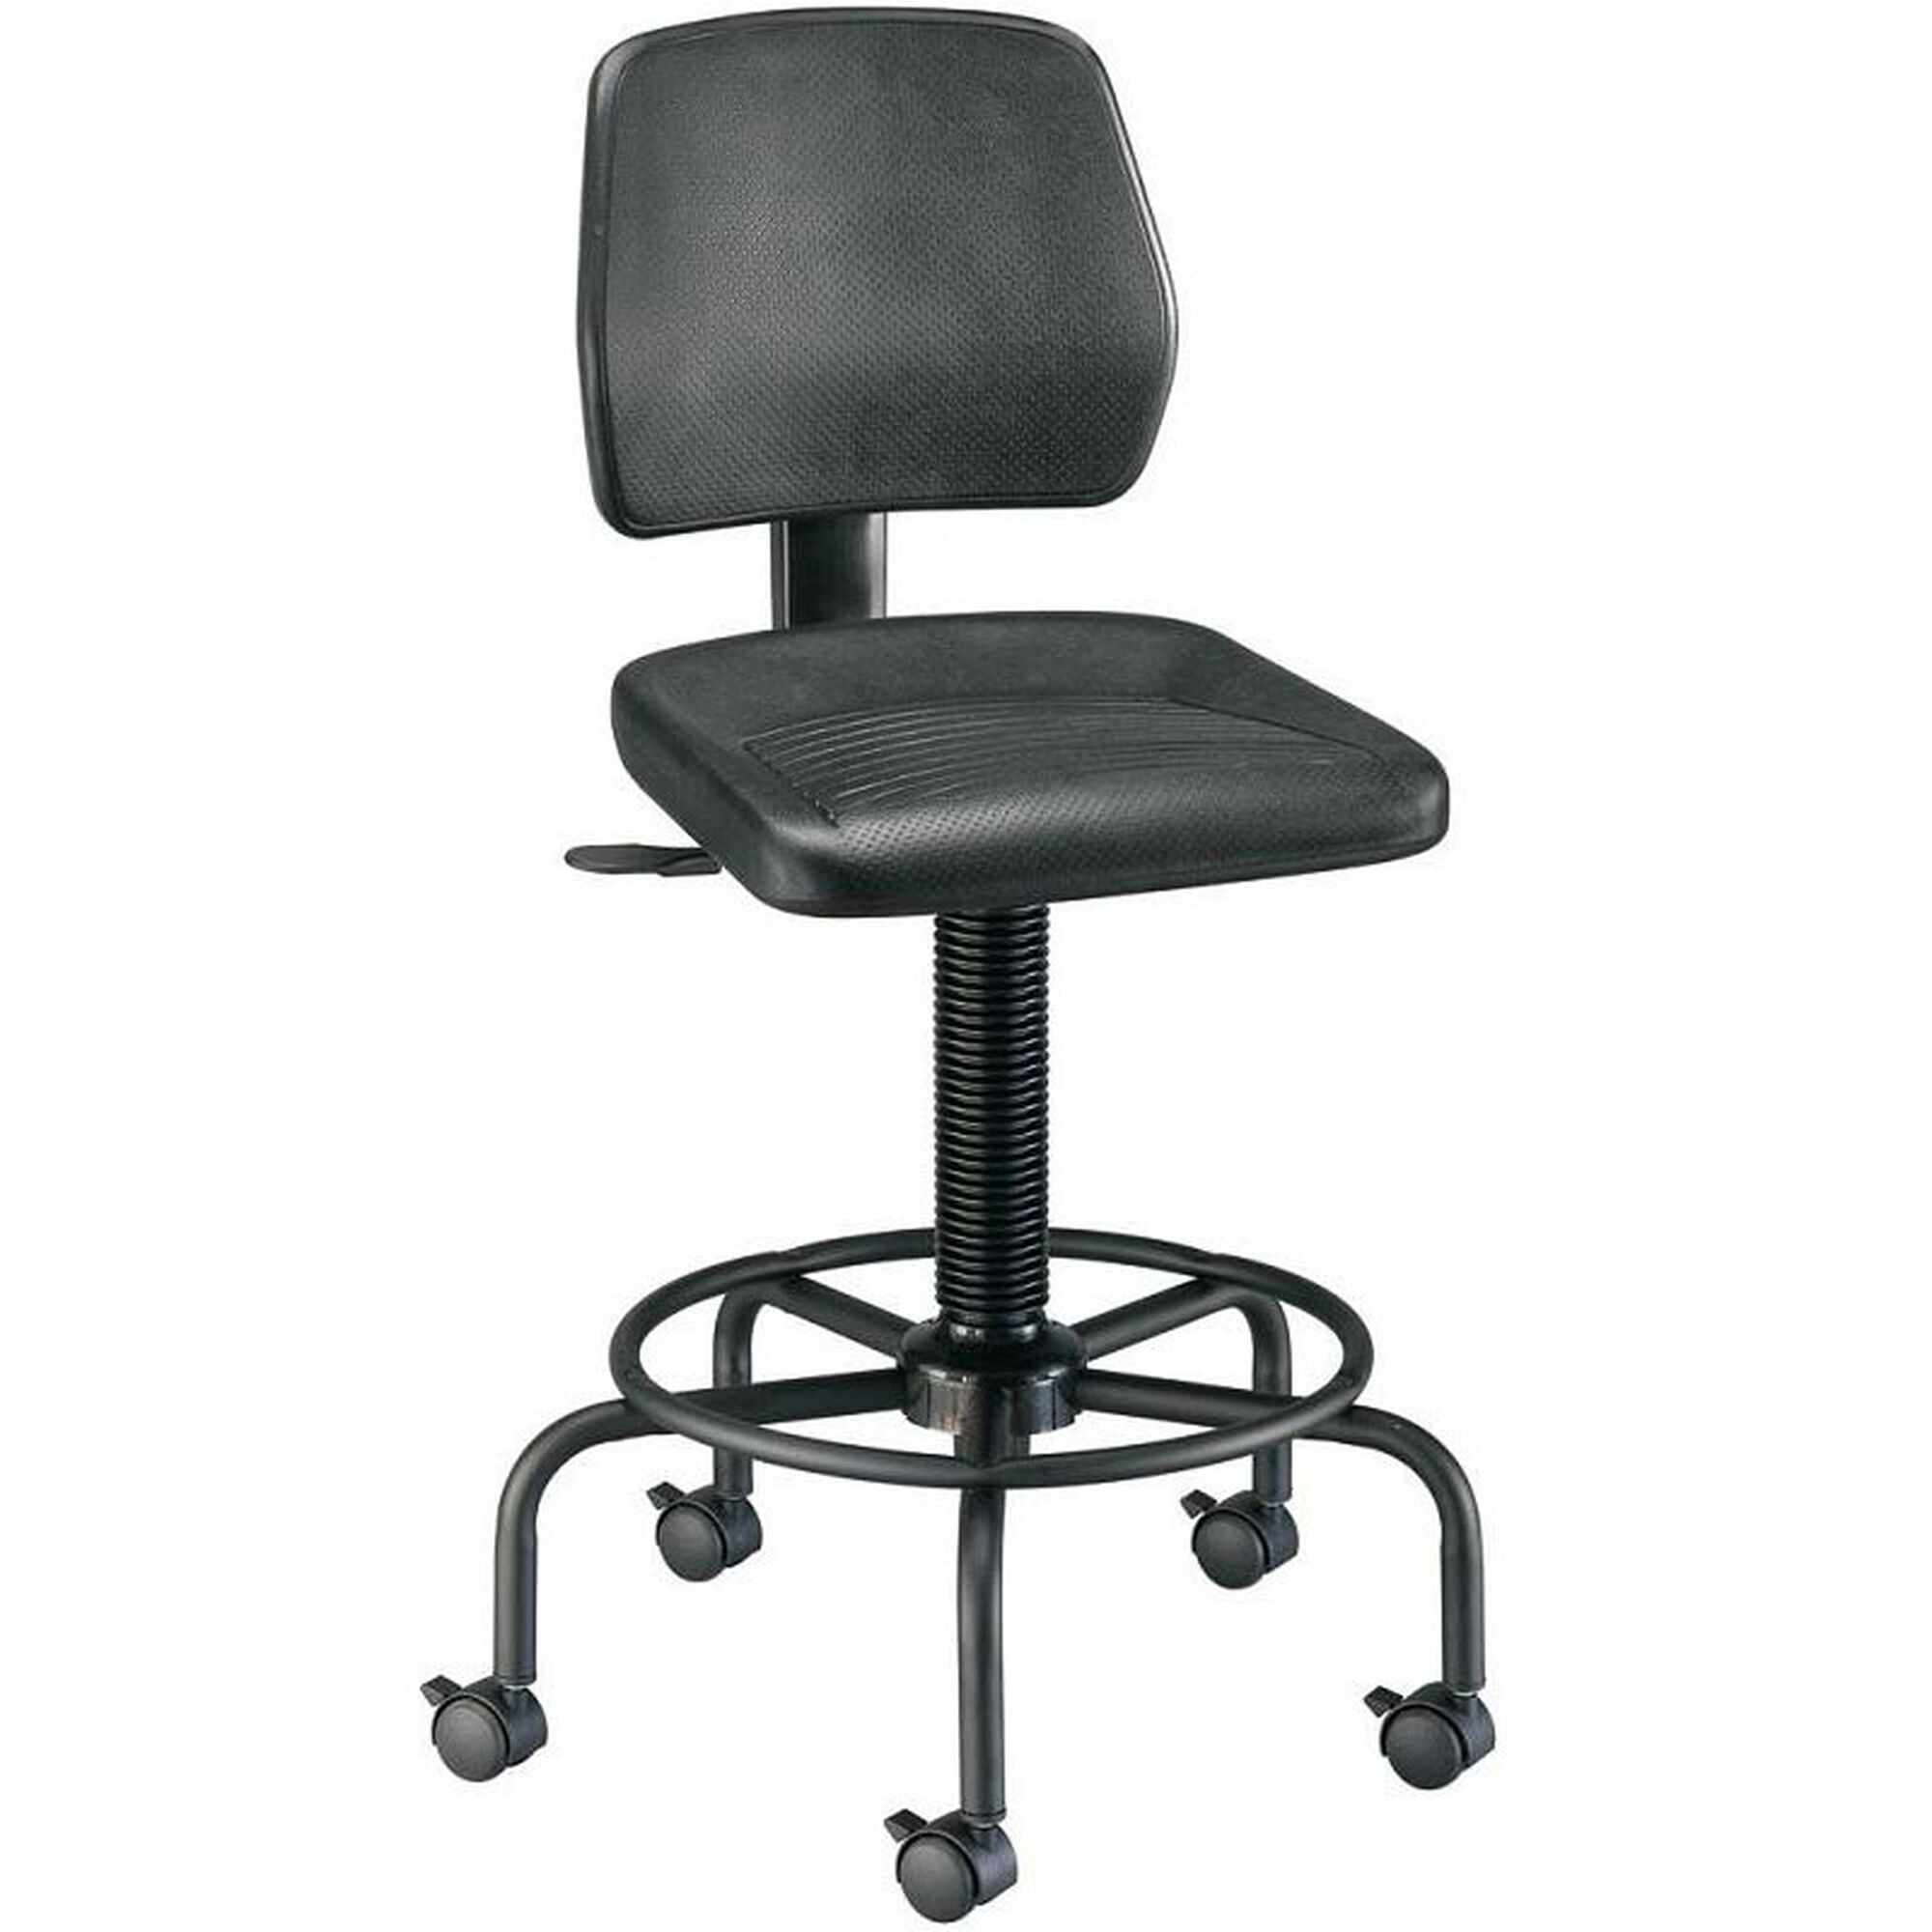 loretco.ga Coupon Codes. loretco.ga offers a large variety of quality discount chairs and furniture for your office, home, business, restaurant, school, church or events at unbeatable prices!